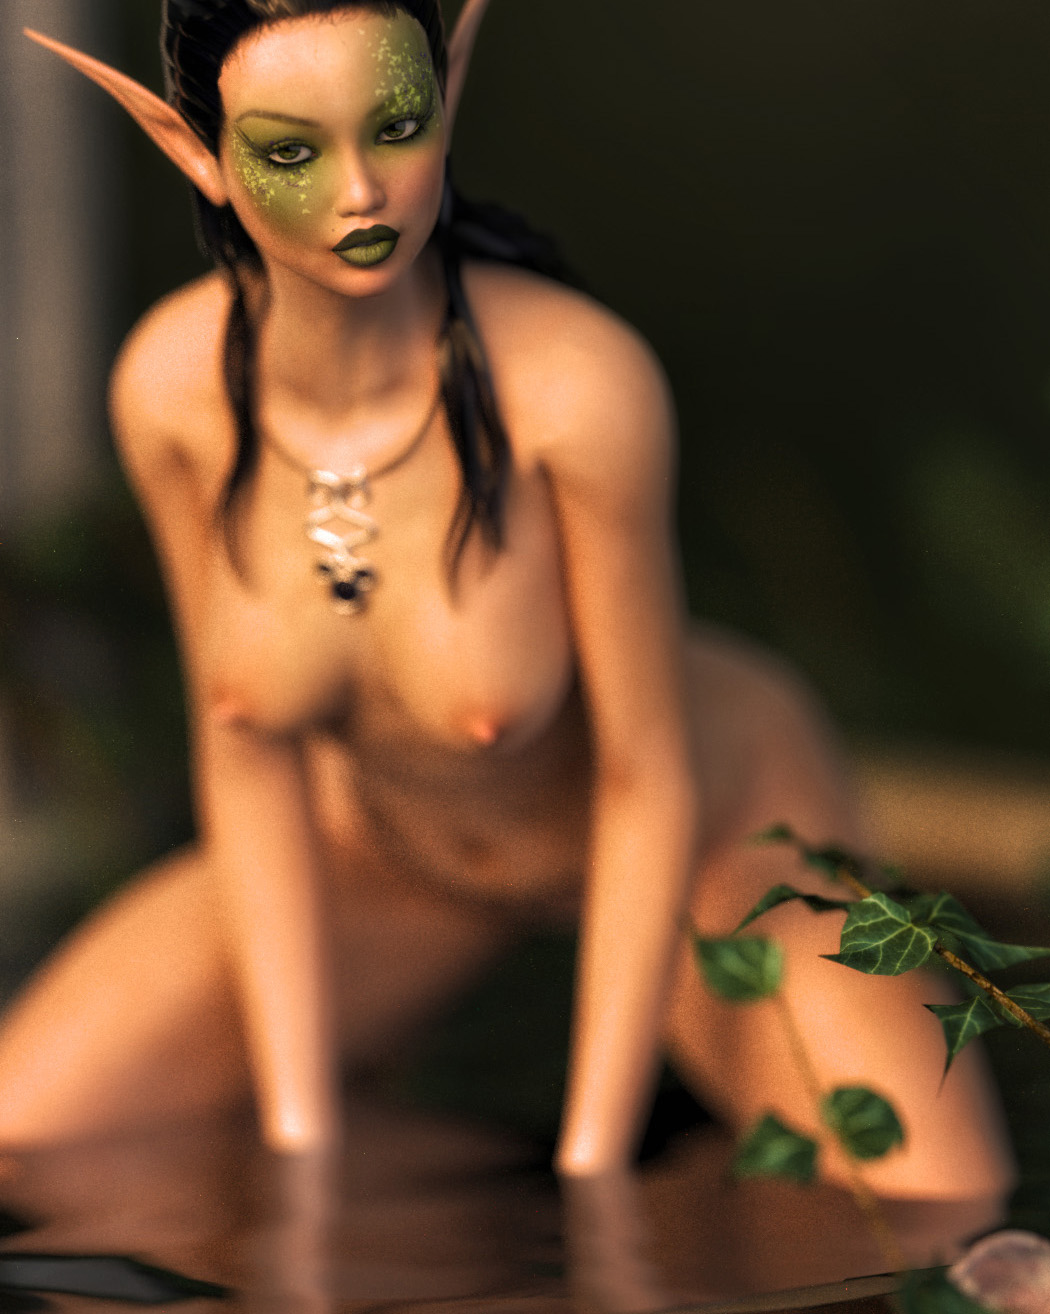 Naked dark female vampire warriors exposed photos